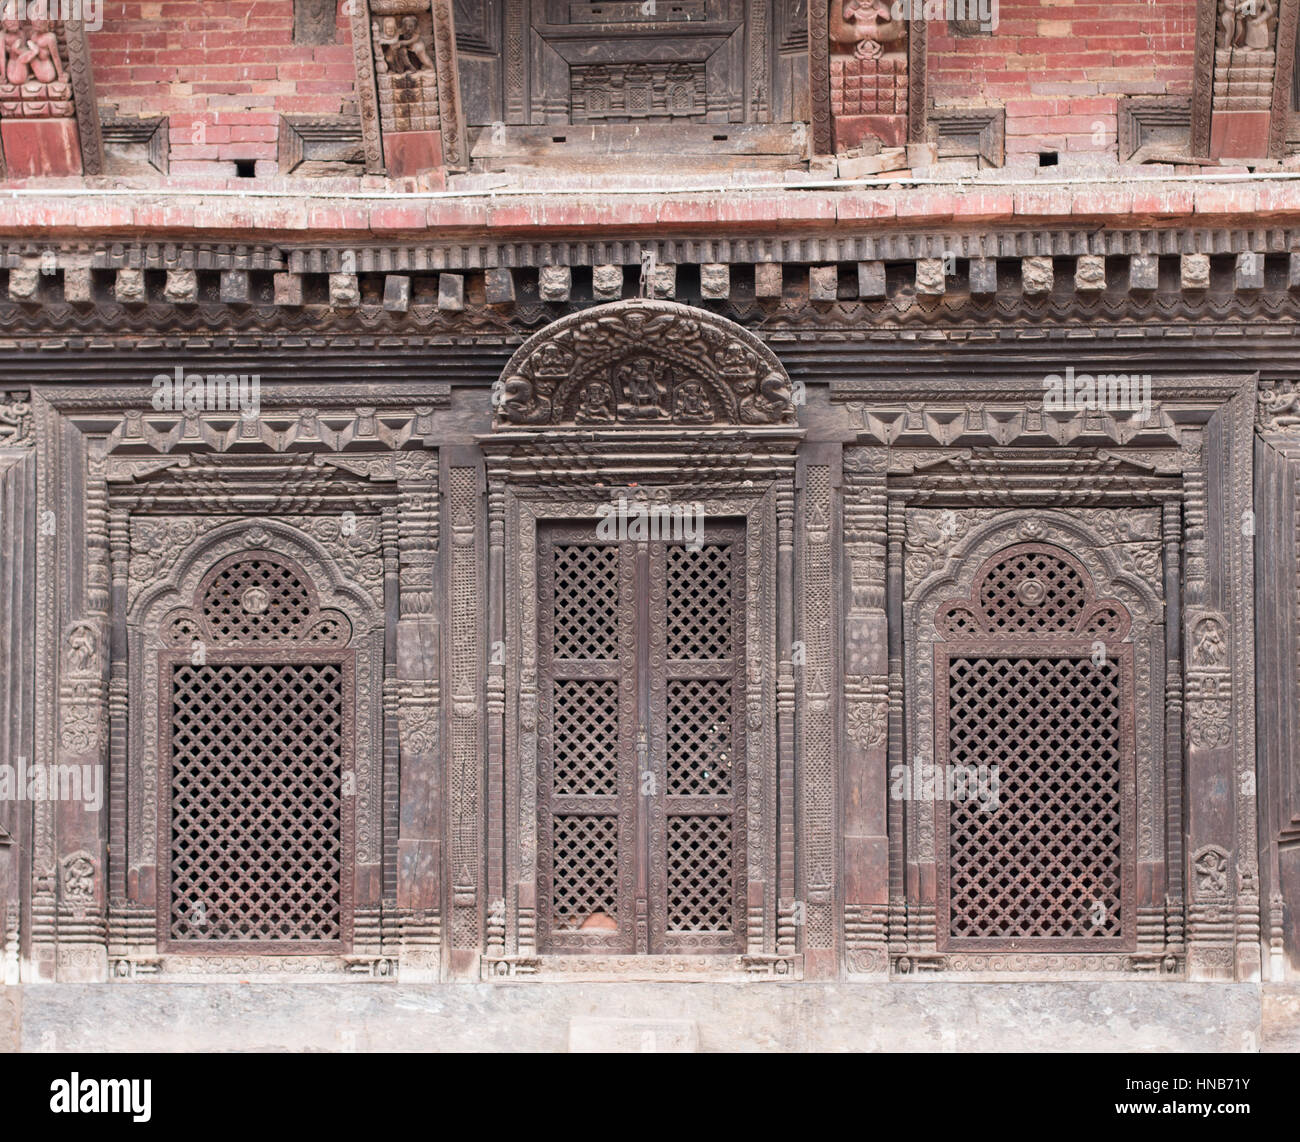 Intricate wooden lattic-work windows and doors of an old building in Bhaktapur, Kathmandu, carved in the traditional - Stock Image